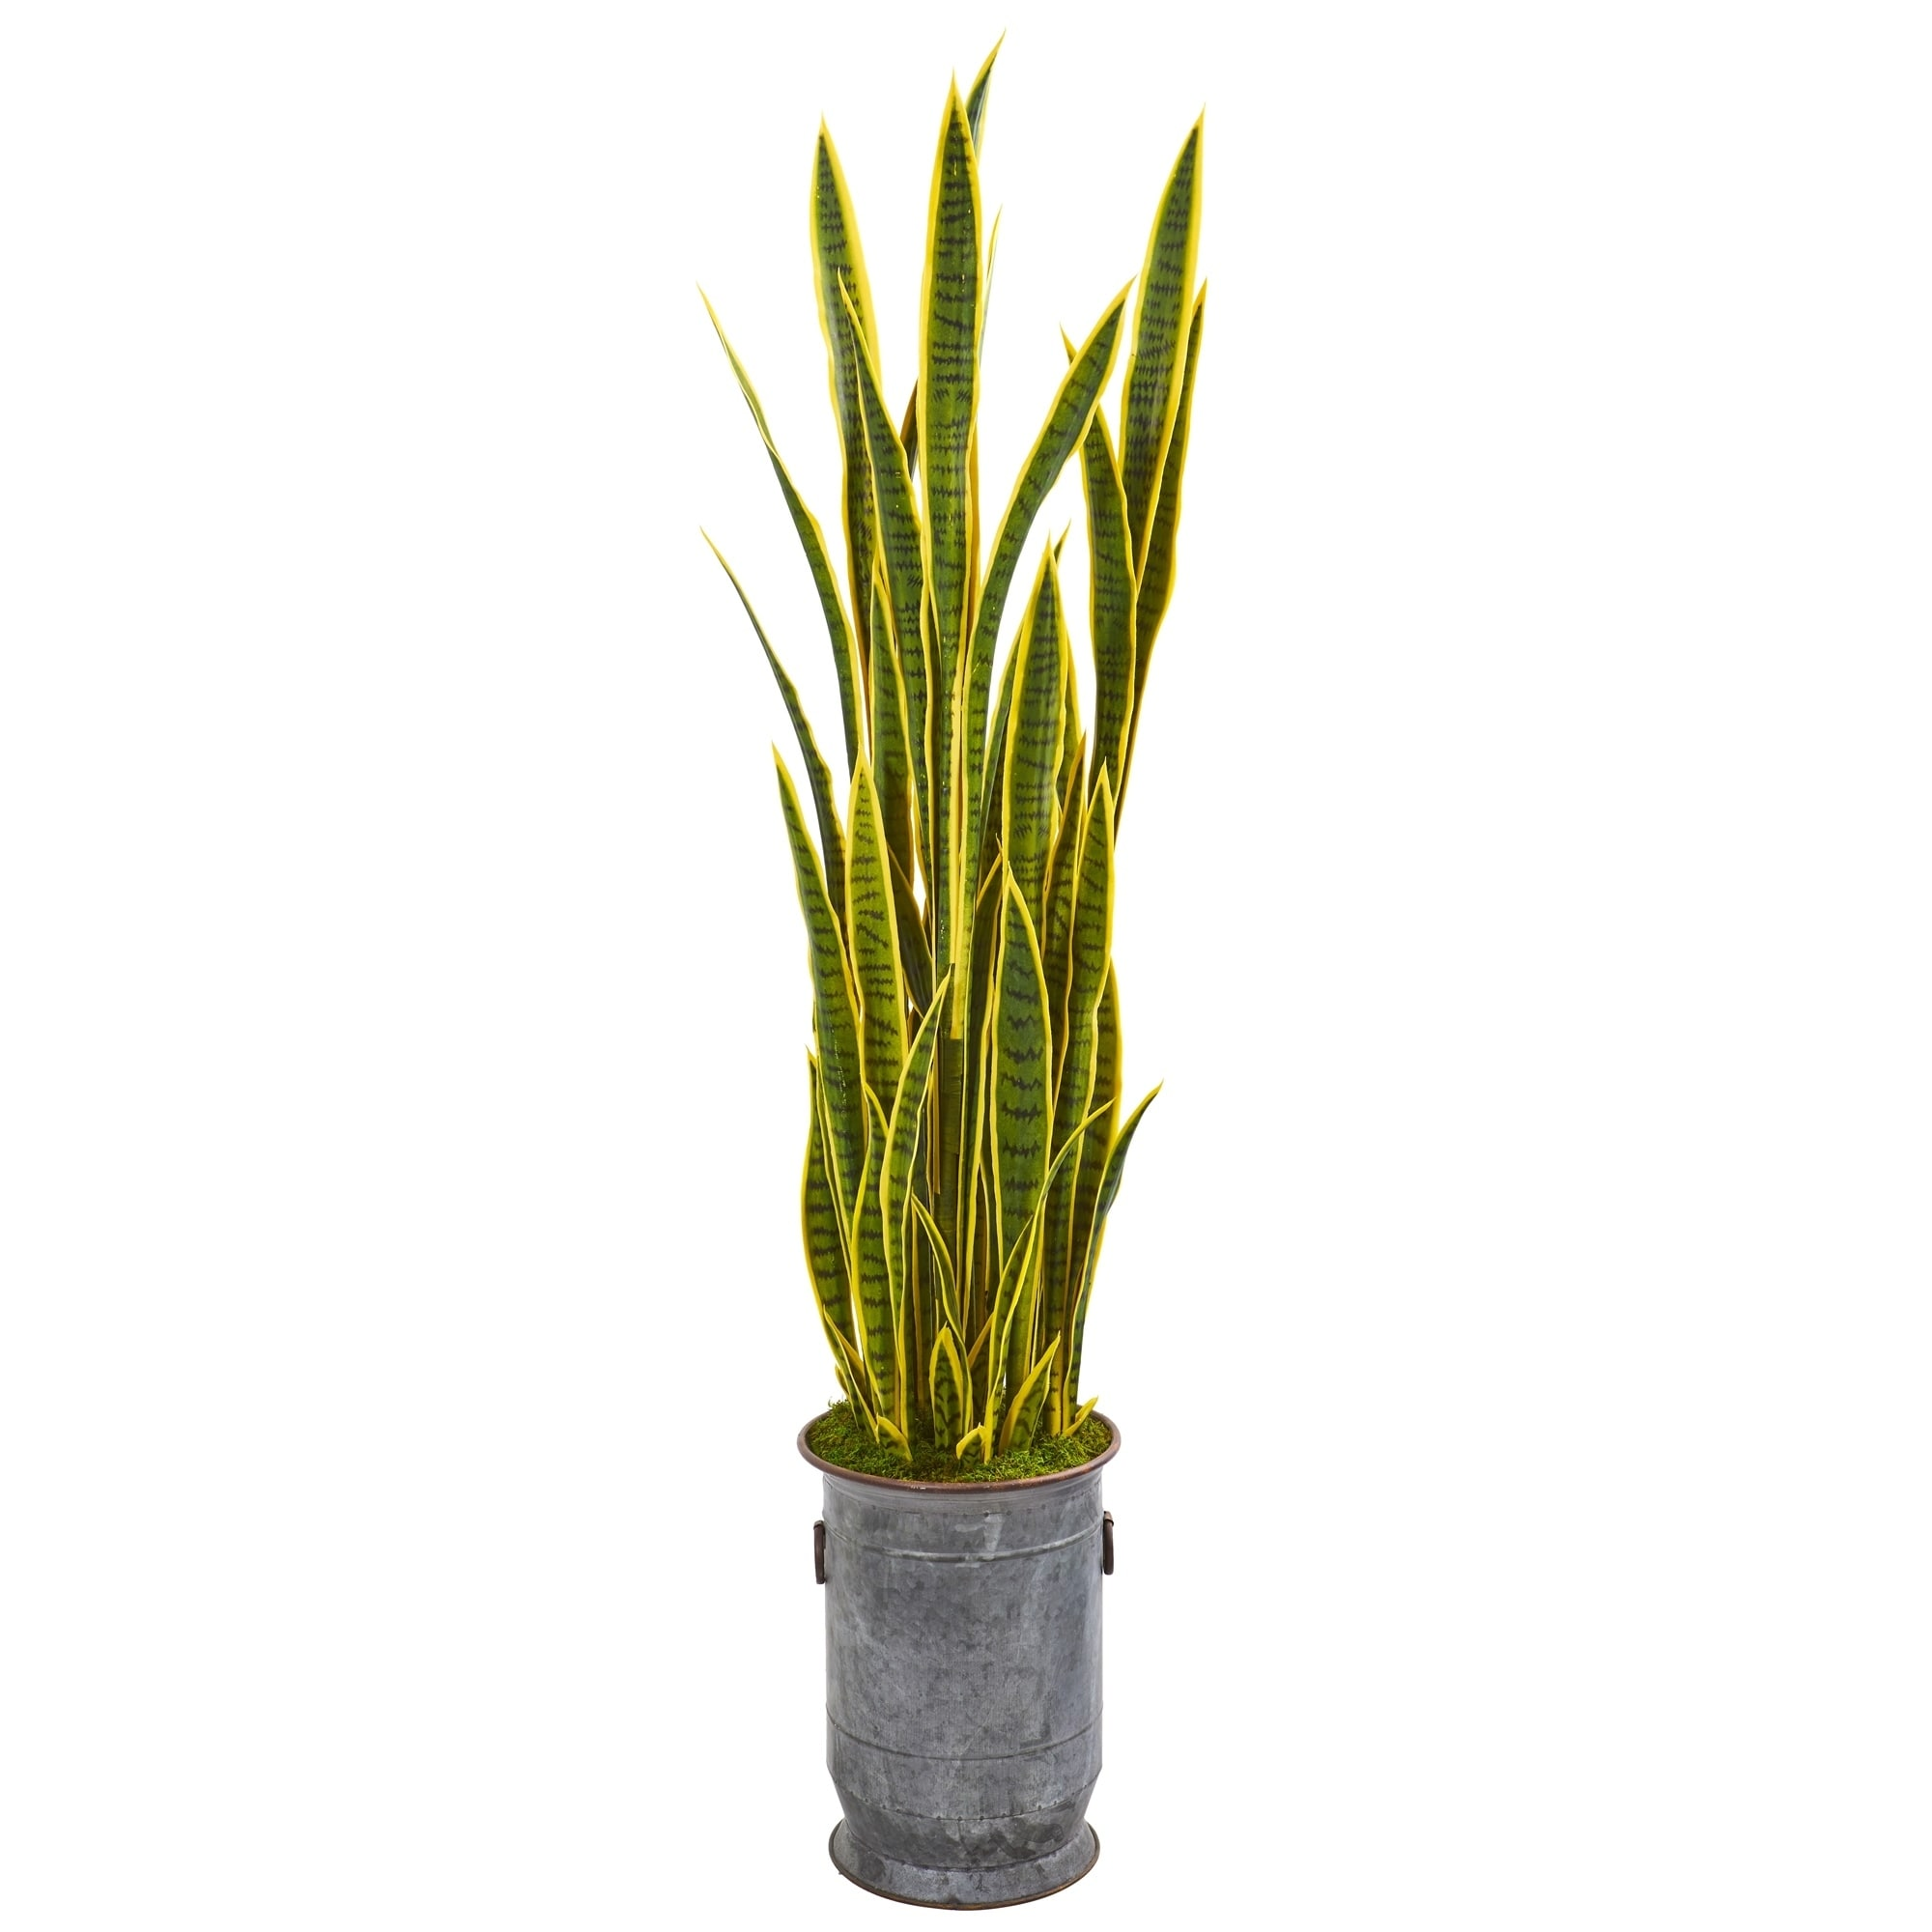 64 Sansevieria Artificial Plant in Metal Planter with Copper Trimming